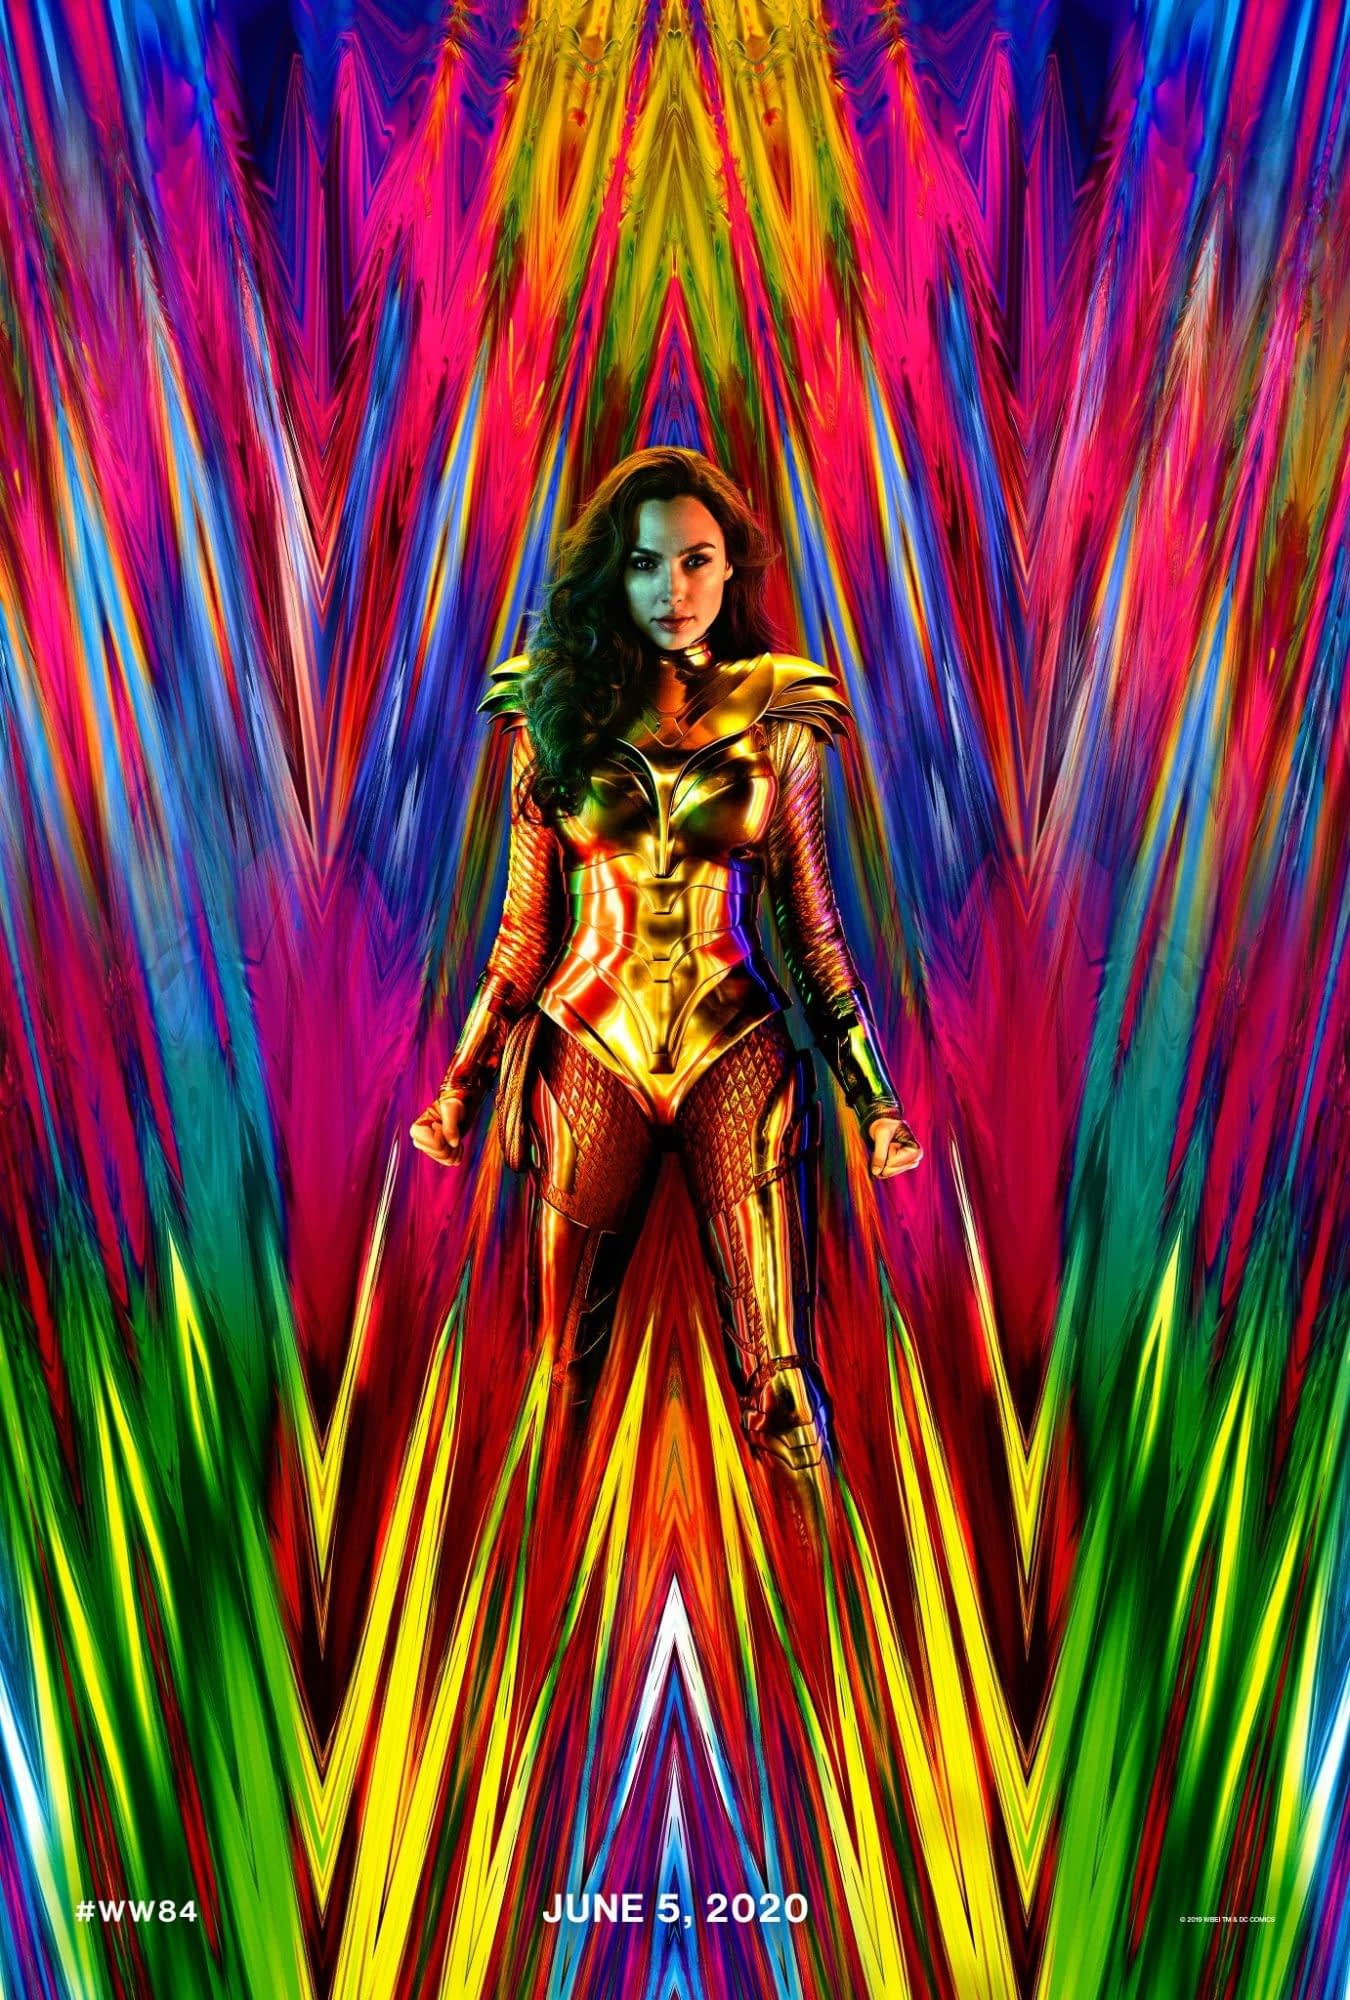 'Wonder Woman: 1984' Poster Shared by Patty Jenkins